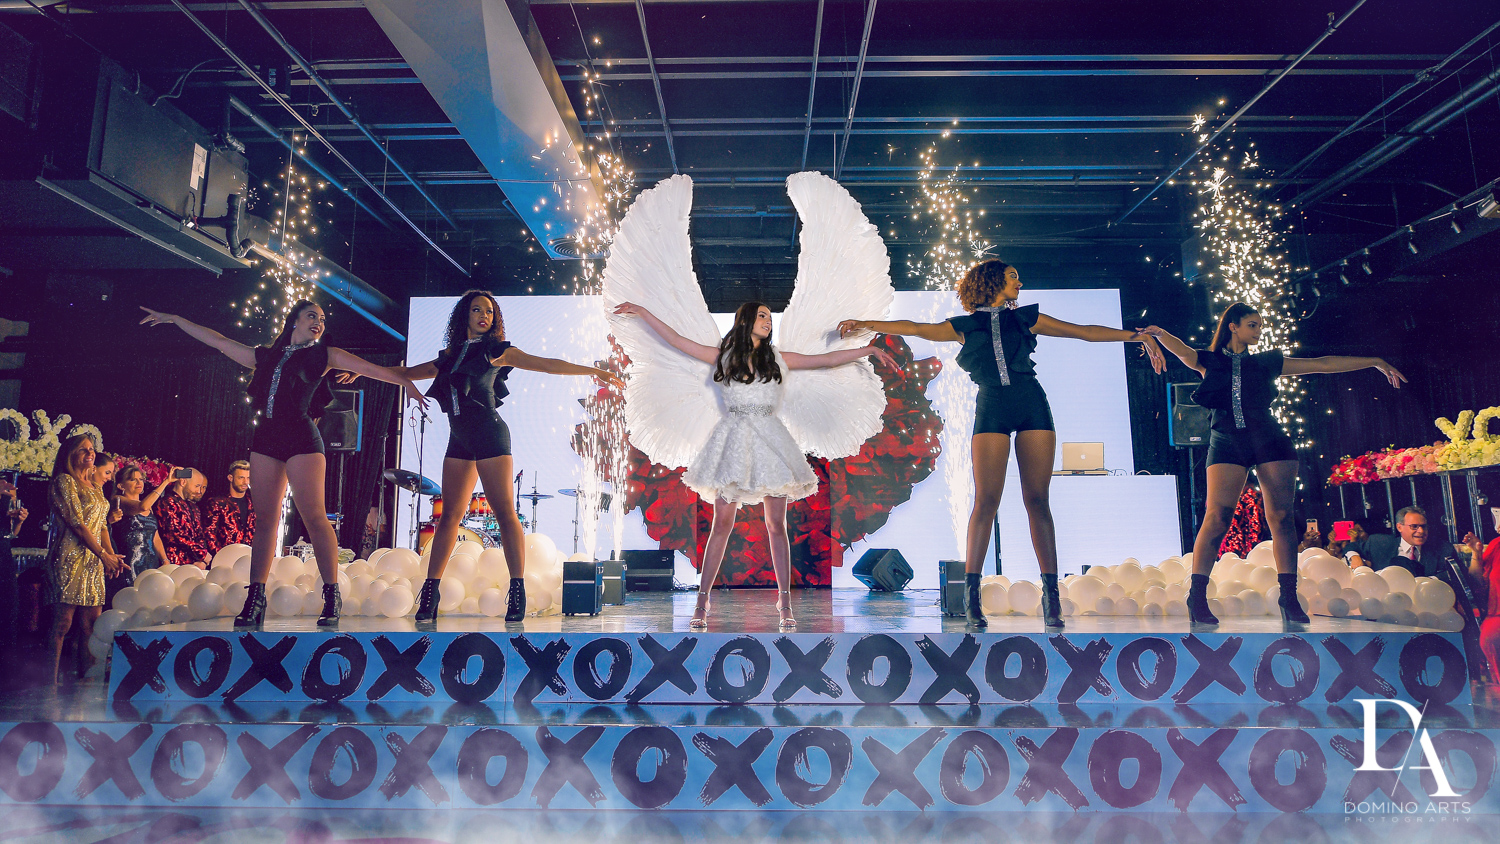 angel wings at Fashion Theme Bat Mitzvah at Gallery of Amazing Things by Domino Arts Photography